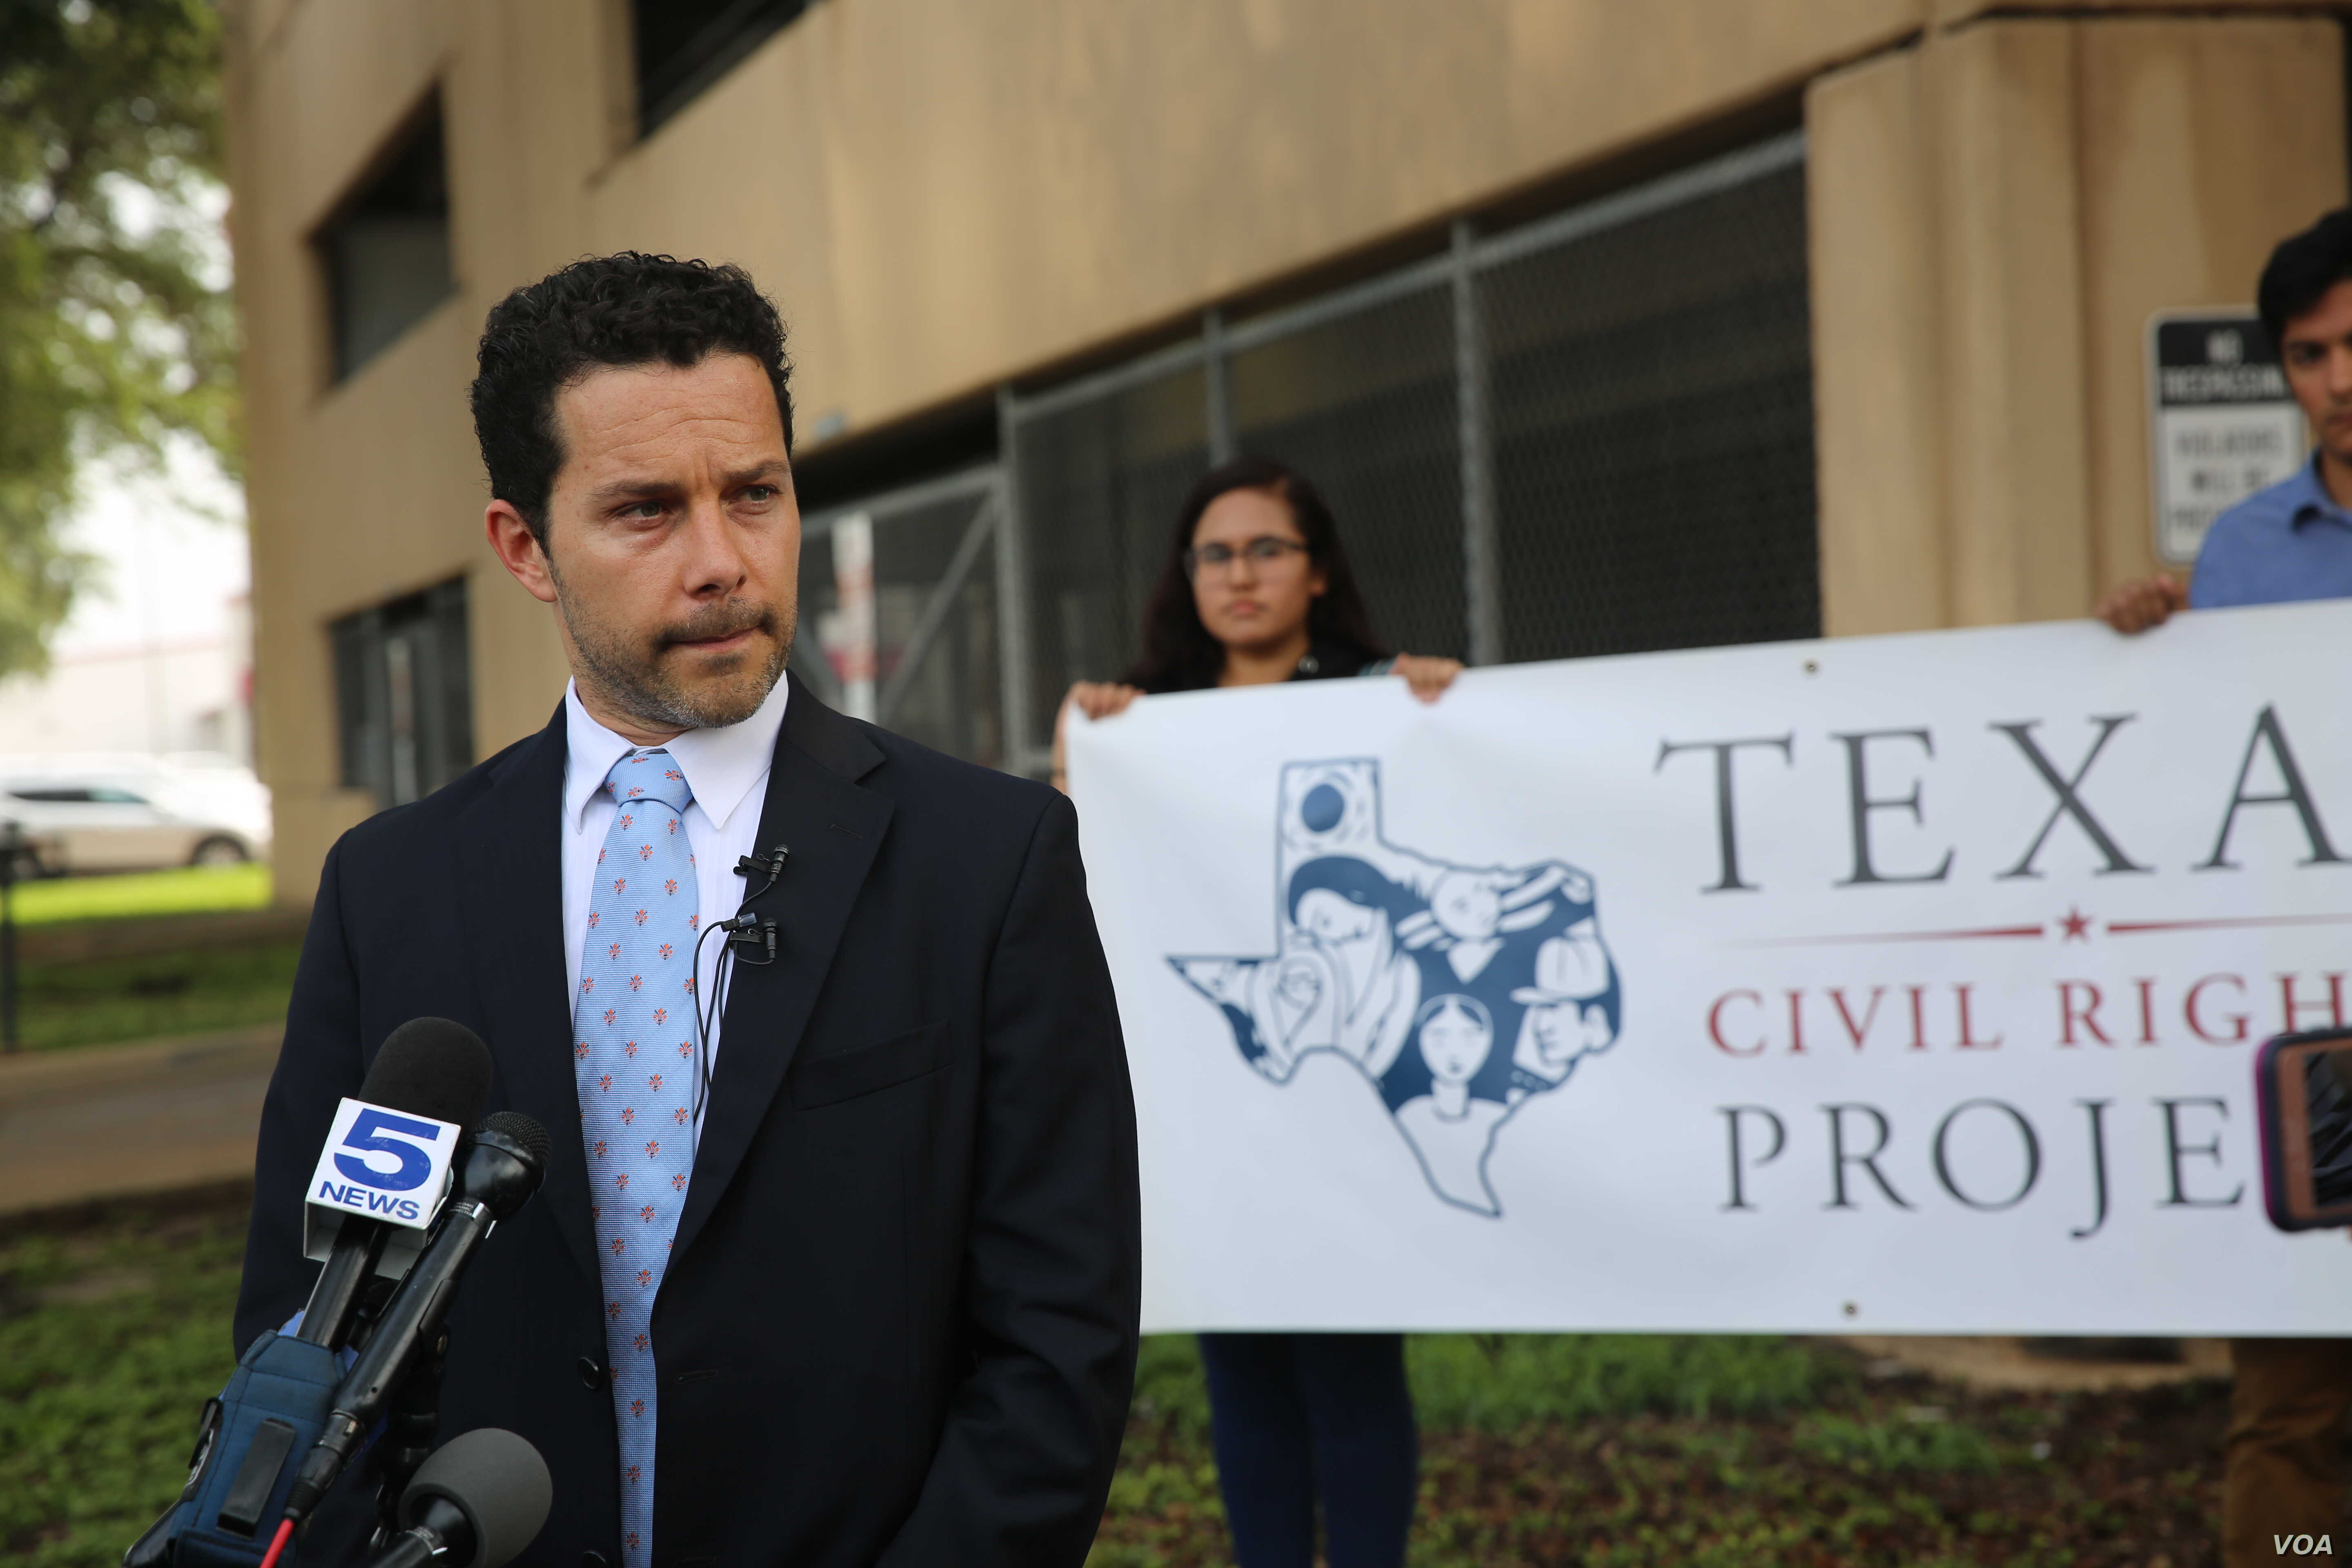 Outside the Federal Courthouse in McAllen, Texas, June 22, 2018, Texas Civil Rights Project attorney, Efren Olivares, (TCRP) told members of the media this was the first day no parents were being criminally prosecuted for the misdemeanor of illegal e...